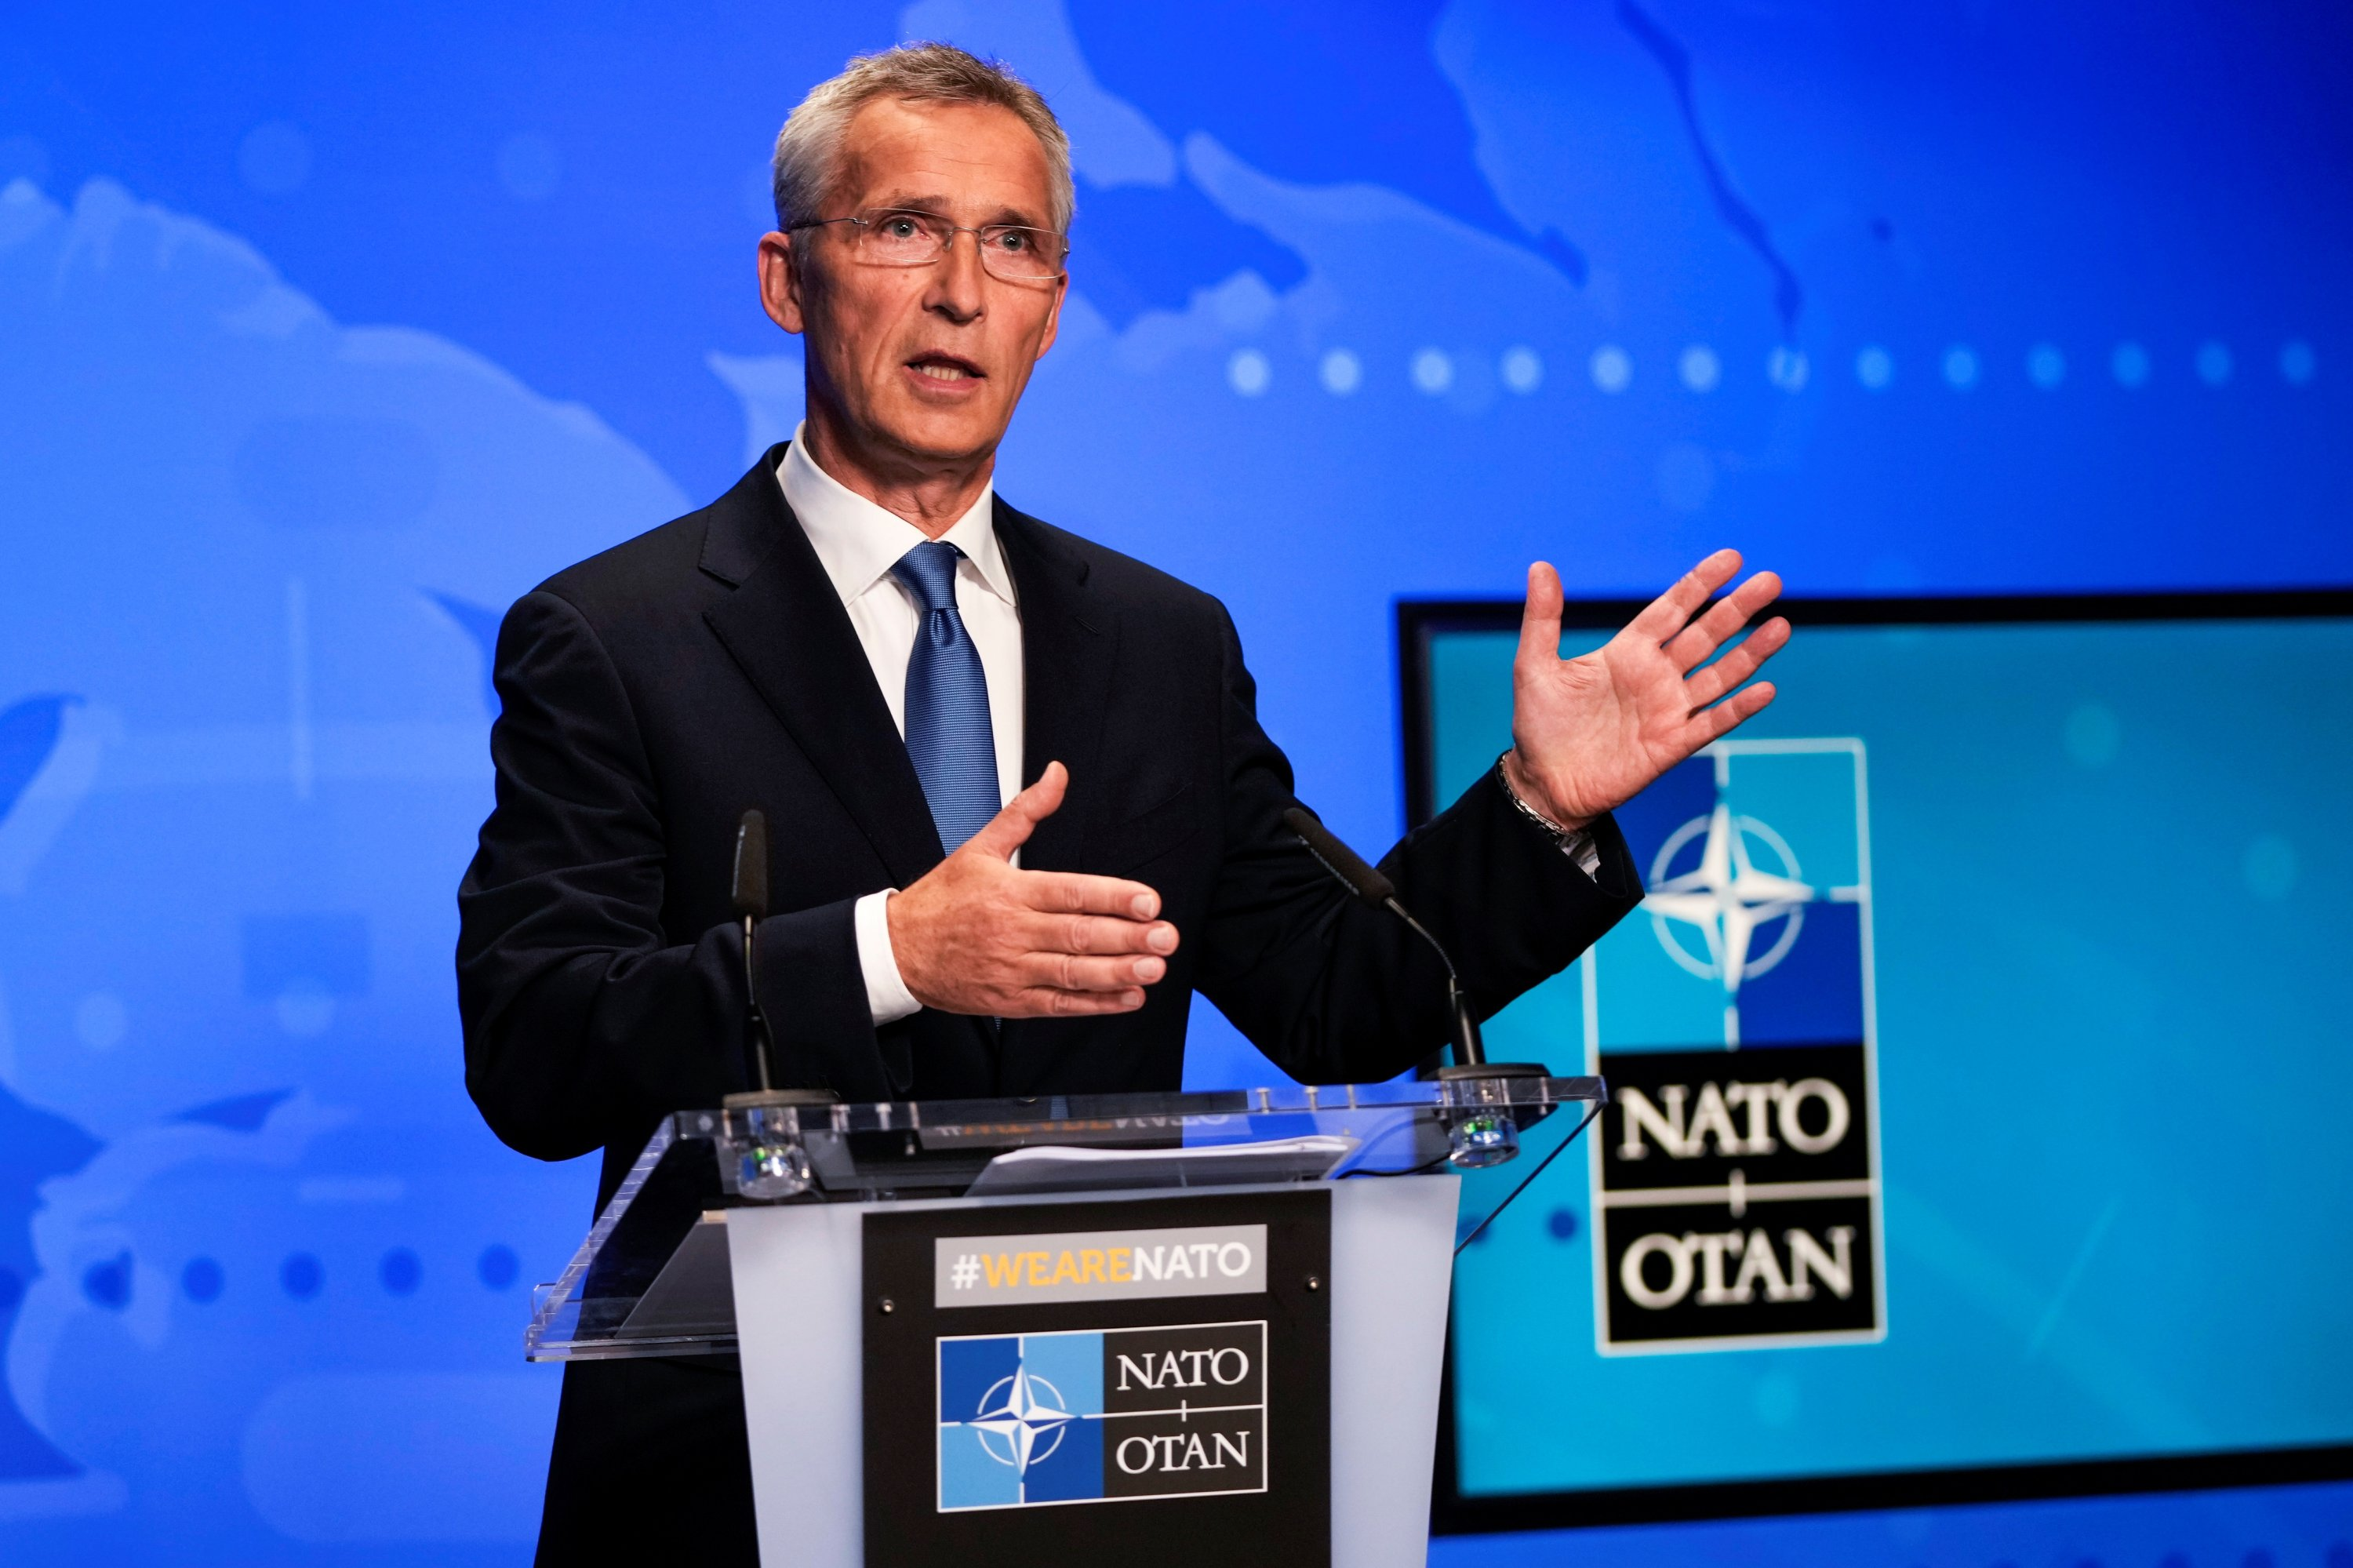 NATO Secretary-General Jens Stoltenberg gestures during an online news conference after a NATO Foreign Ministers video meeting following developments in Afghanistan, at NATO headquarters in Brussels, Belgium, Aug. 20, 2021. (Reuters Photo)